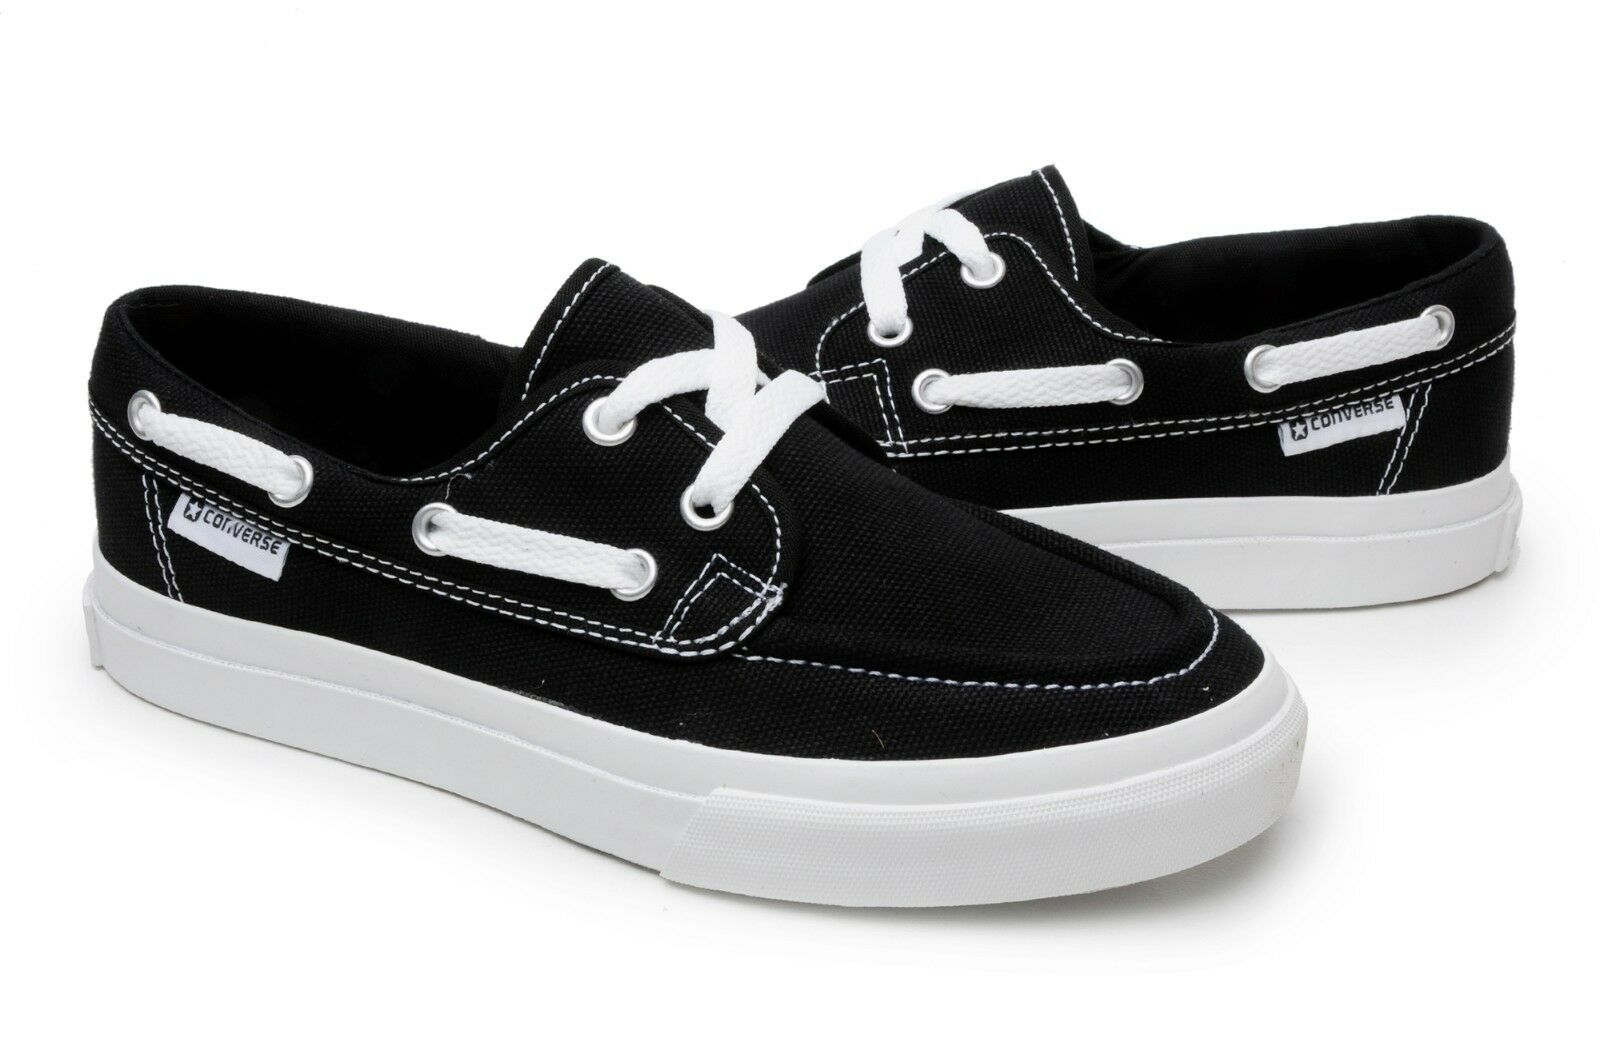 9f100d6cf3a7 Converse Sea Star Ox Womens Size 7 Black white Textile Boat Shoes